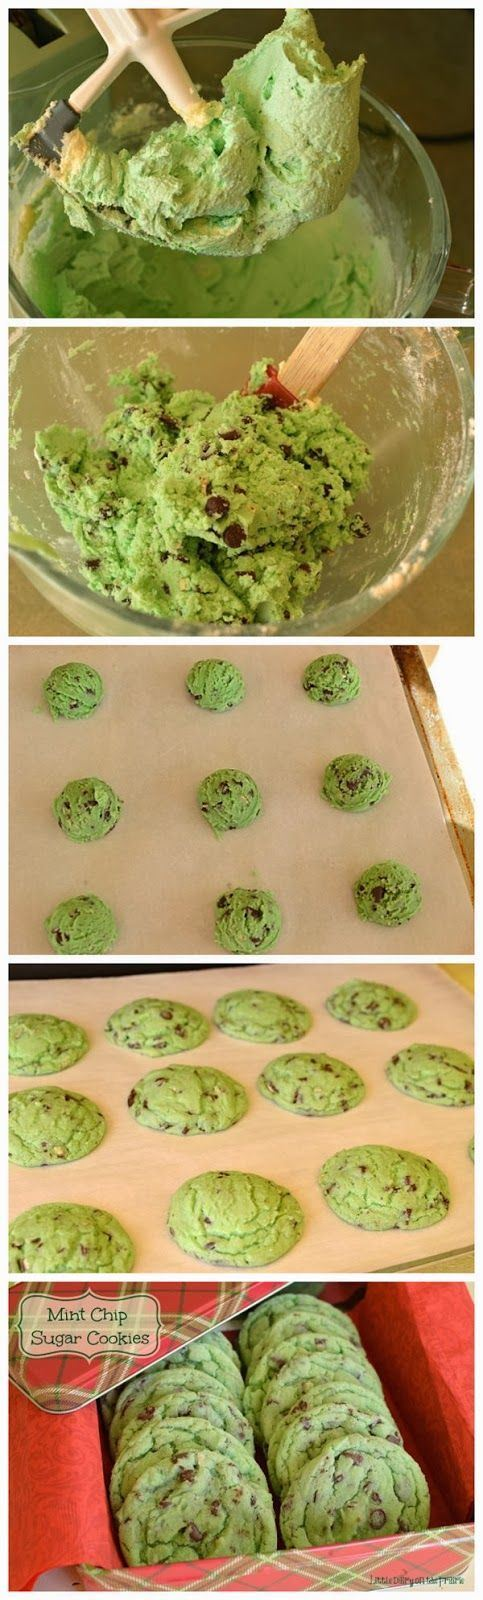 Mint chip sugar cookies recipe healthy and yummy food recipes mint chip sugar cookies recipe healthy and yummy food recipes the recipes blog forumfinder Images